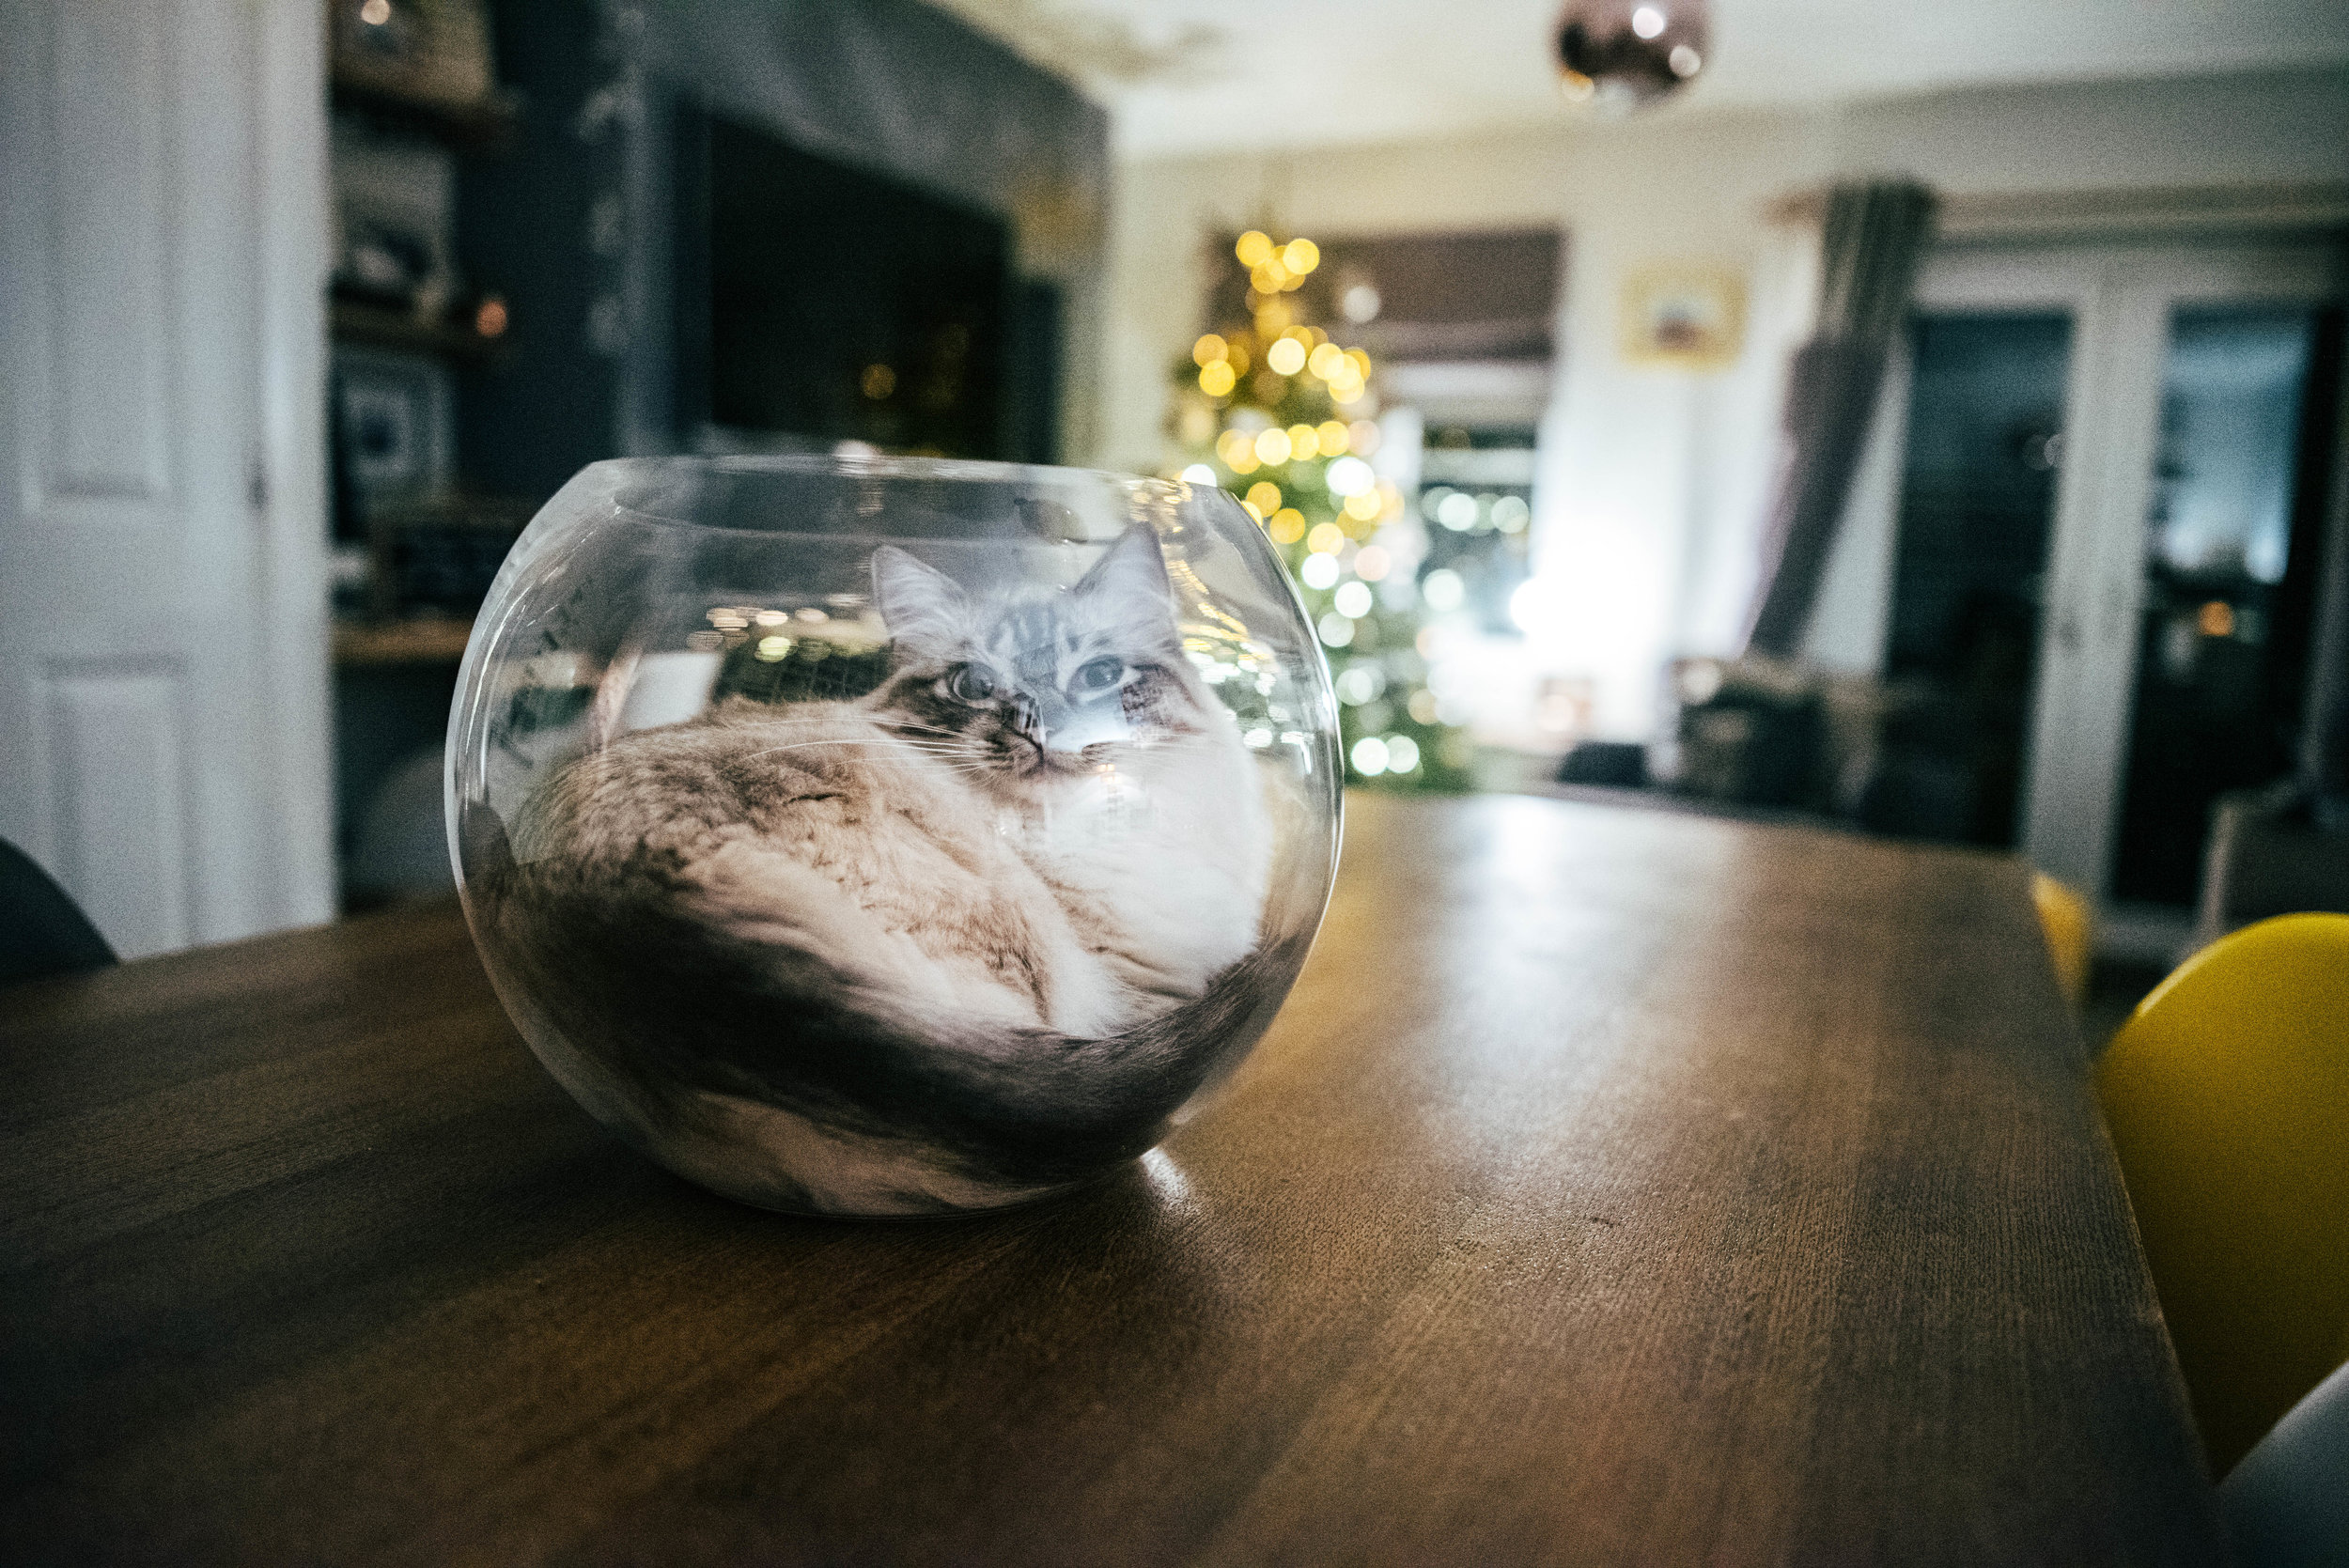 Ragdoll cat sits in round glass vase by Christmas tree Essex Documentary Family Wedding Photographer